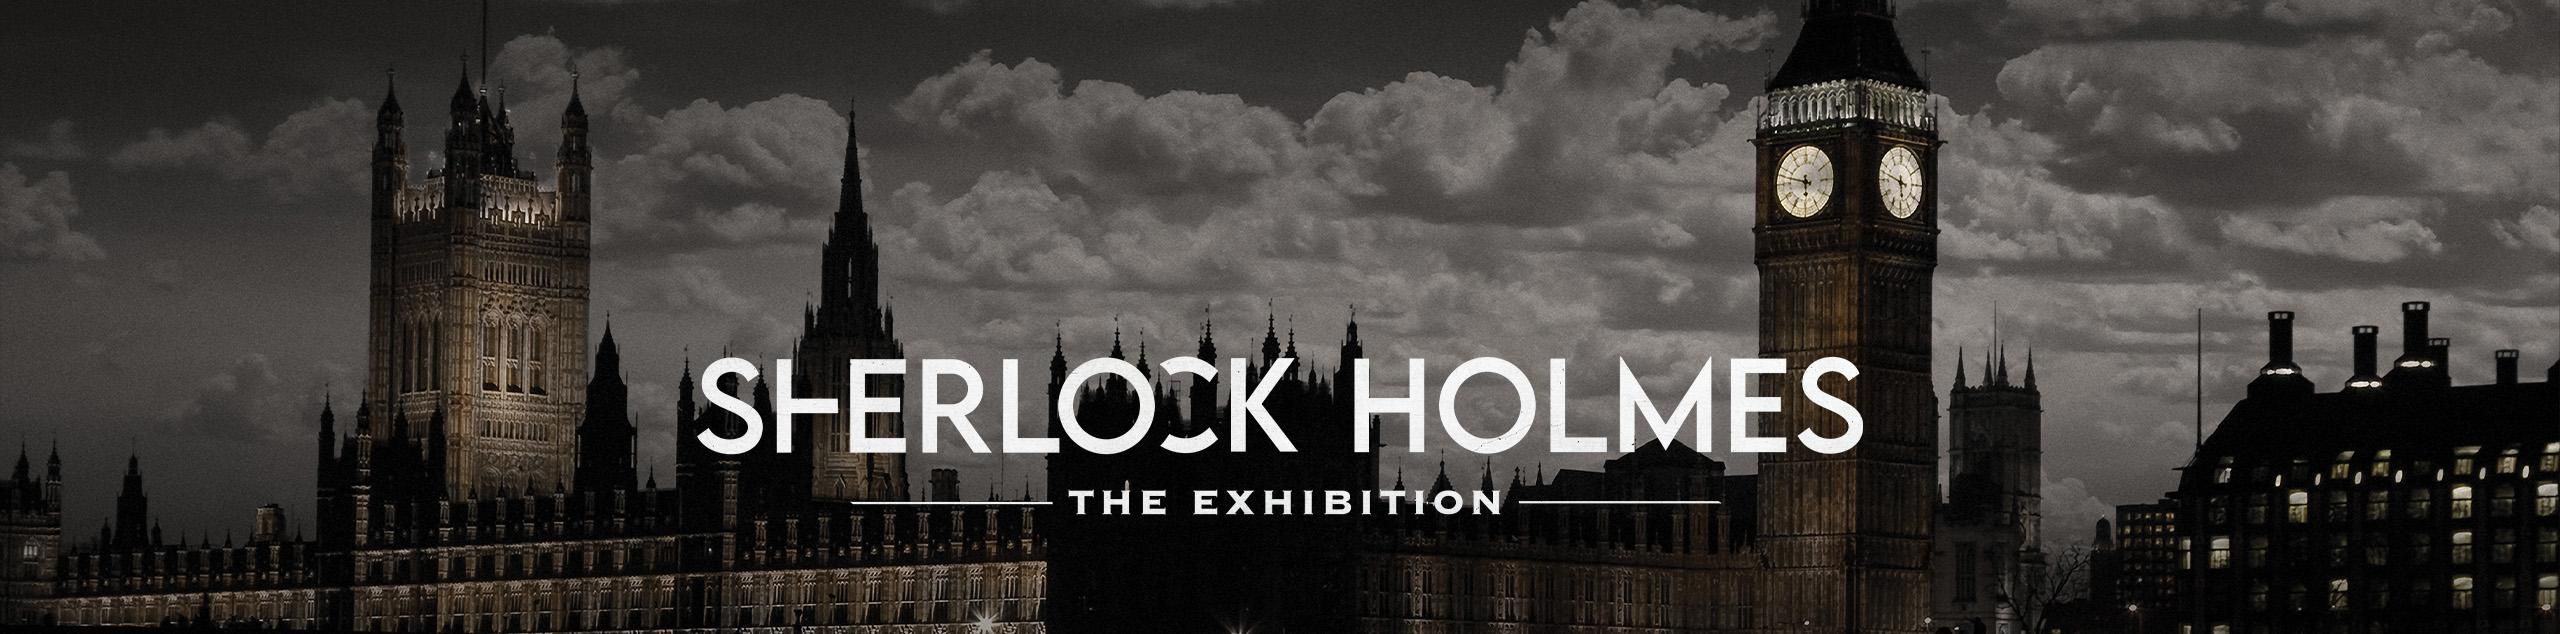 Sherlock Holmes: The Exhibition, Science Museum Oklahoma